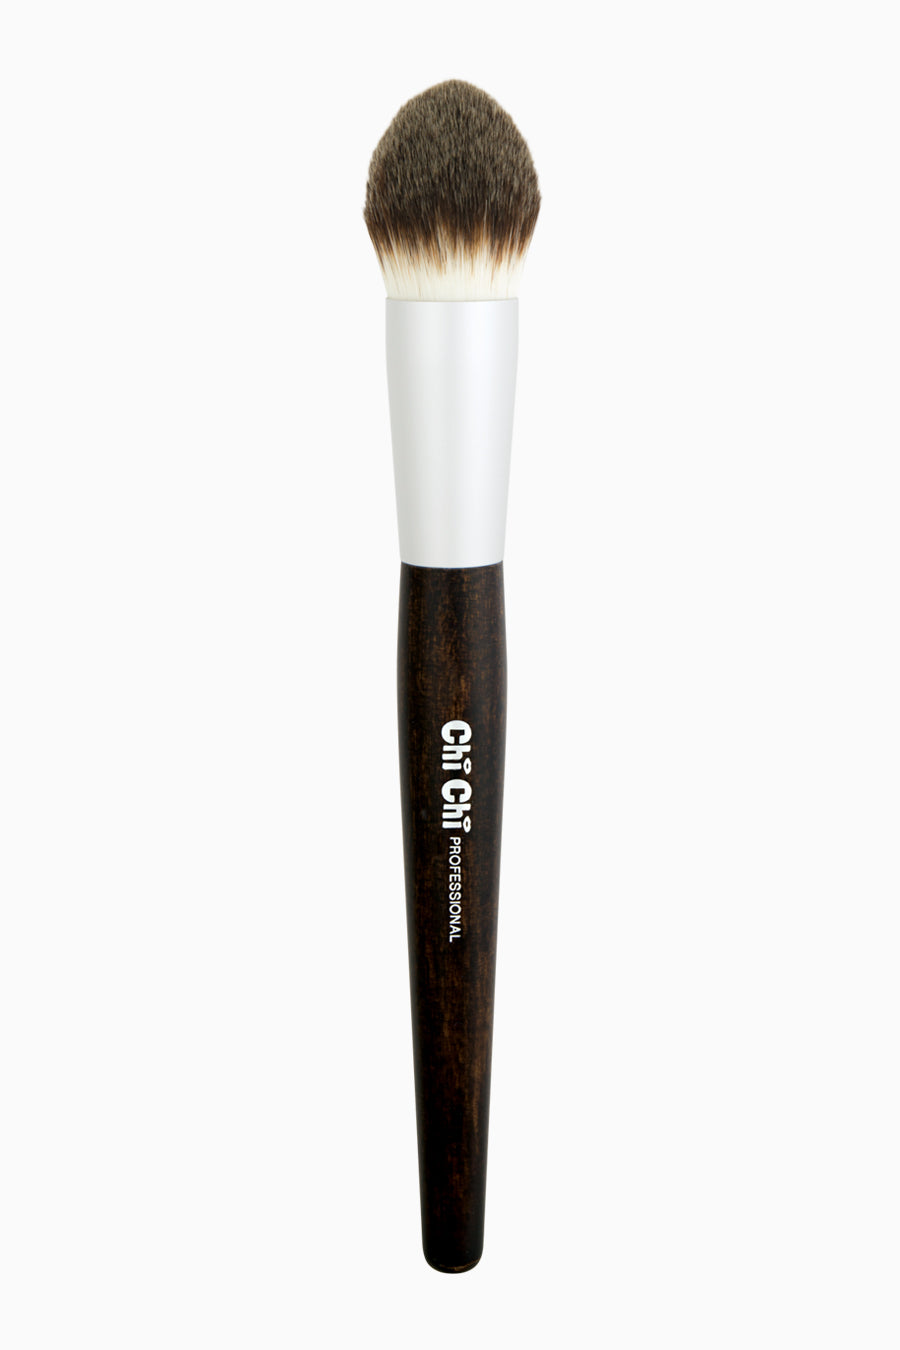 Tapered Face Brush - 122